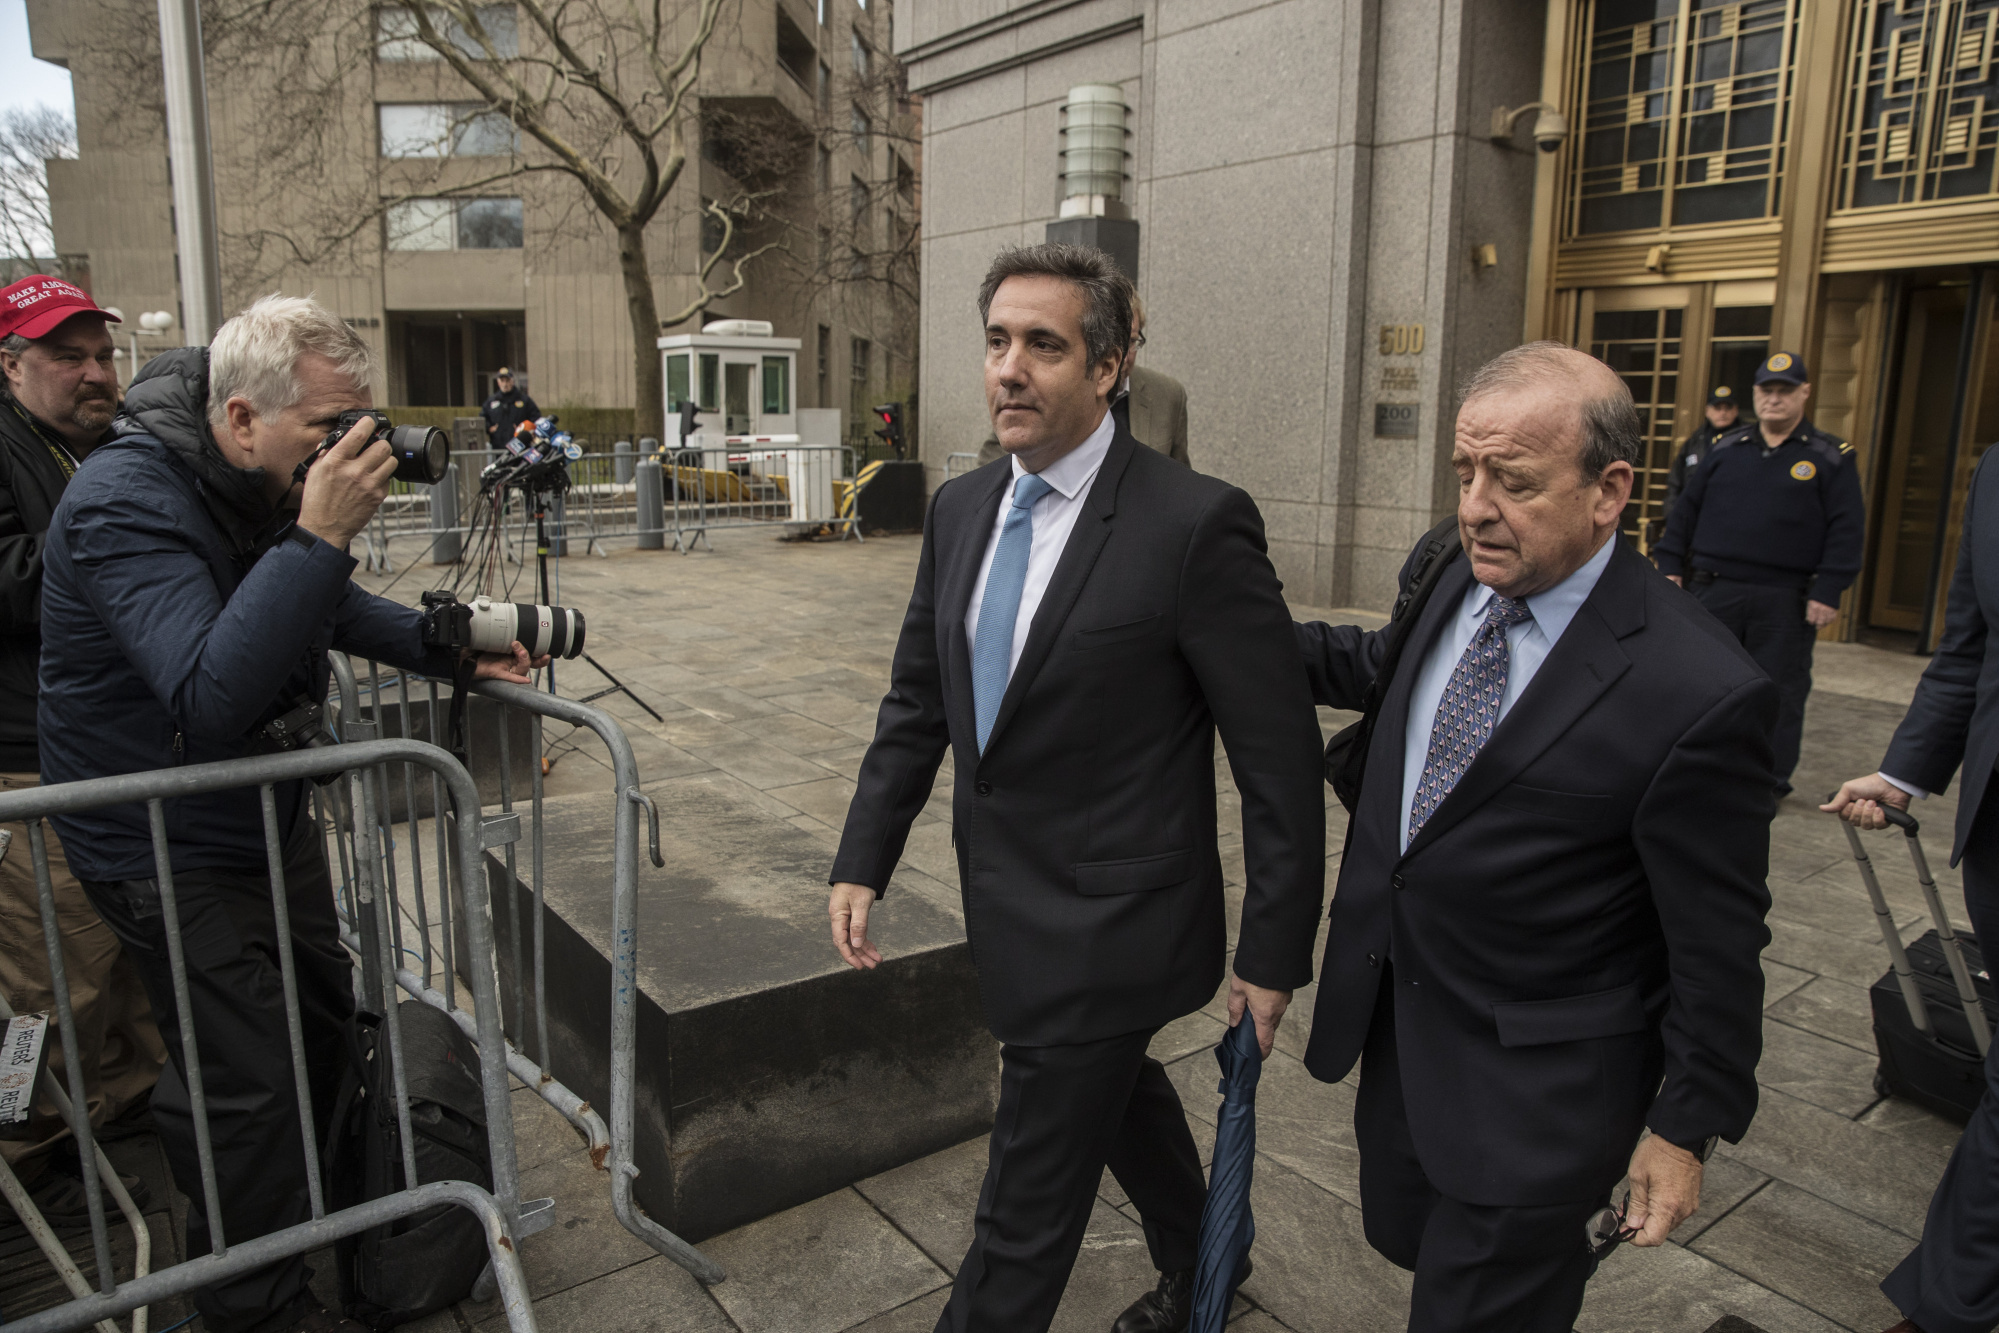 https://assets.sourcemedia.com/04/30/100a7e9846739044c5e1d5027c2e/michael-cohen-lawyer.jpg